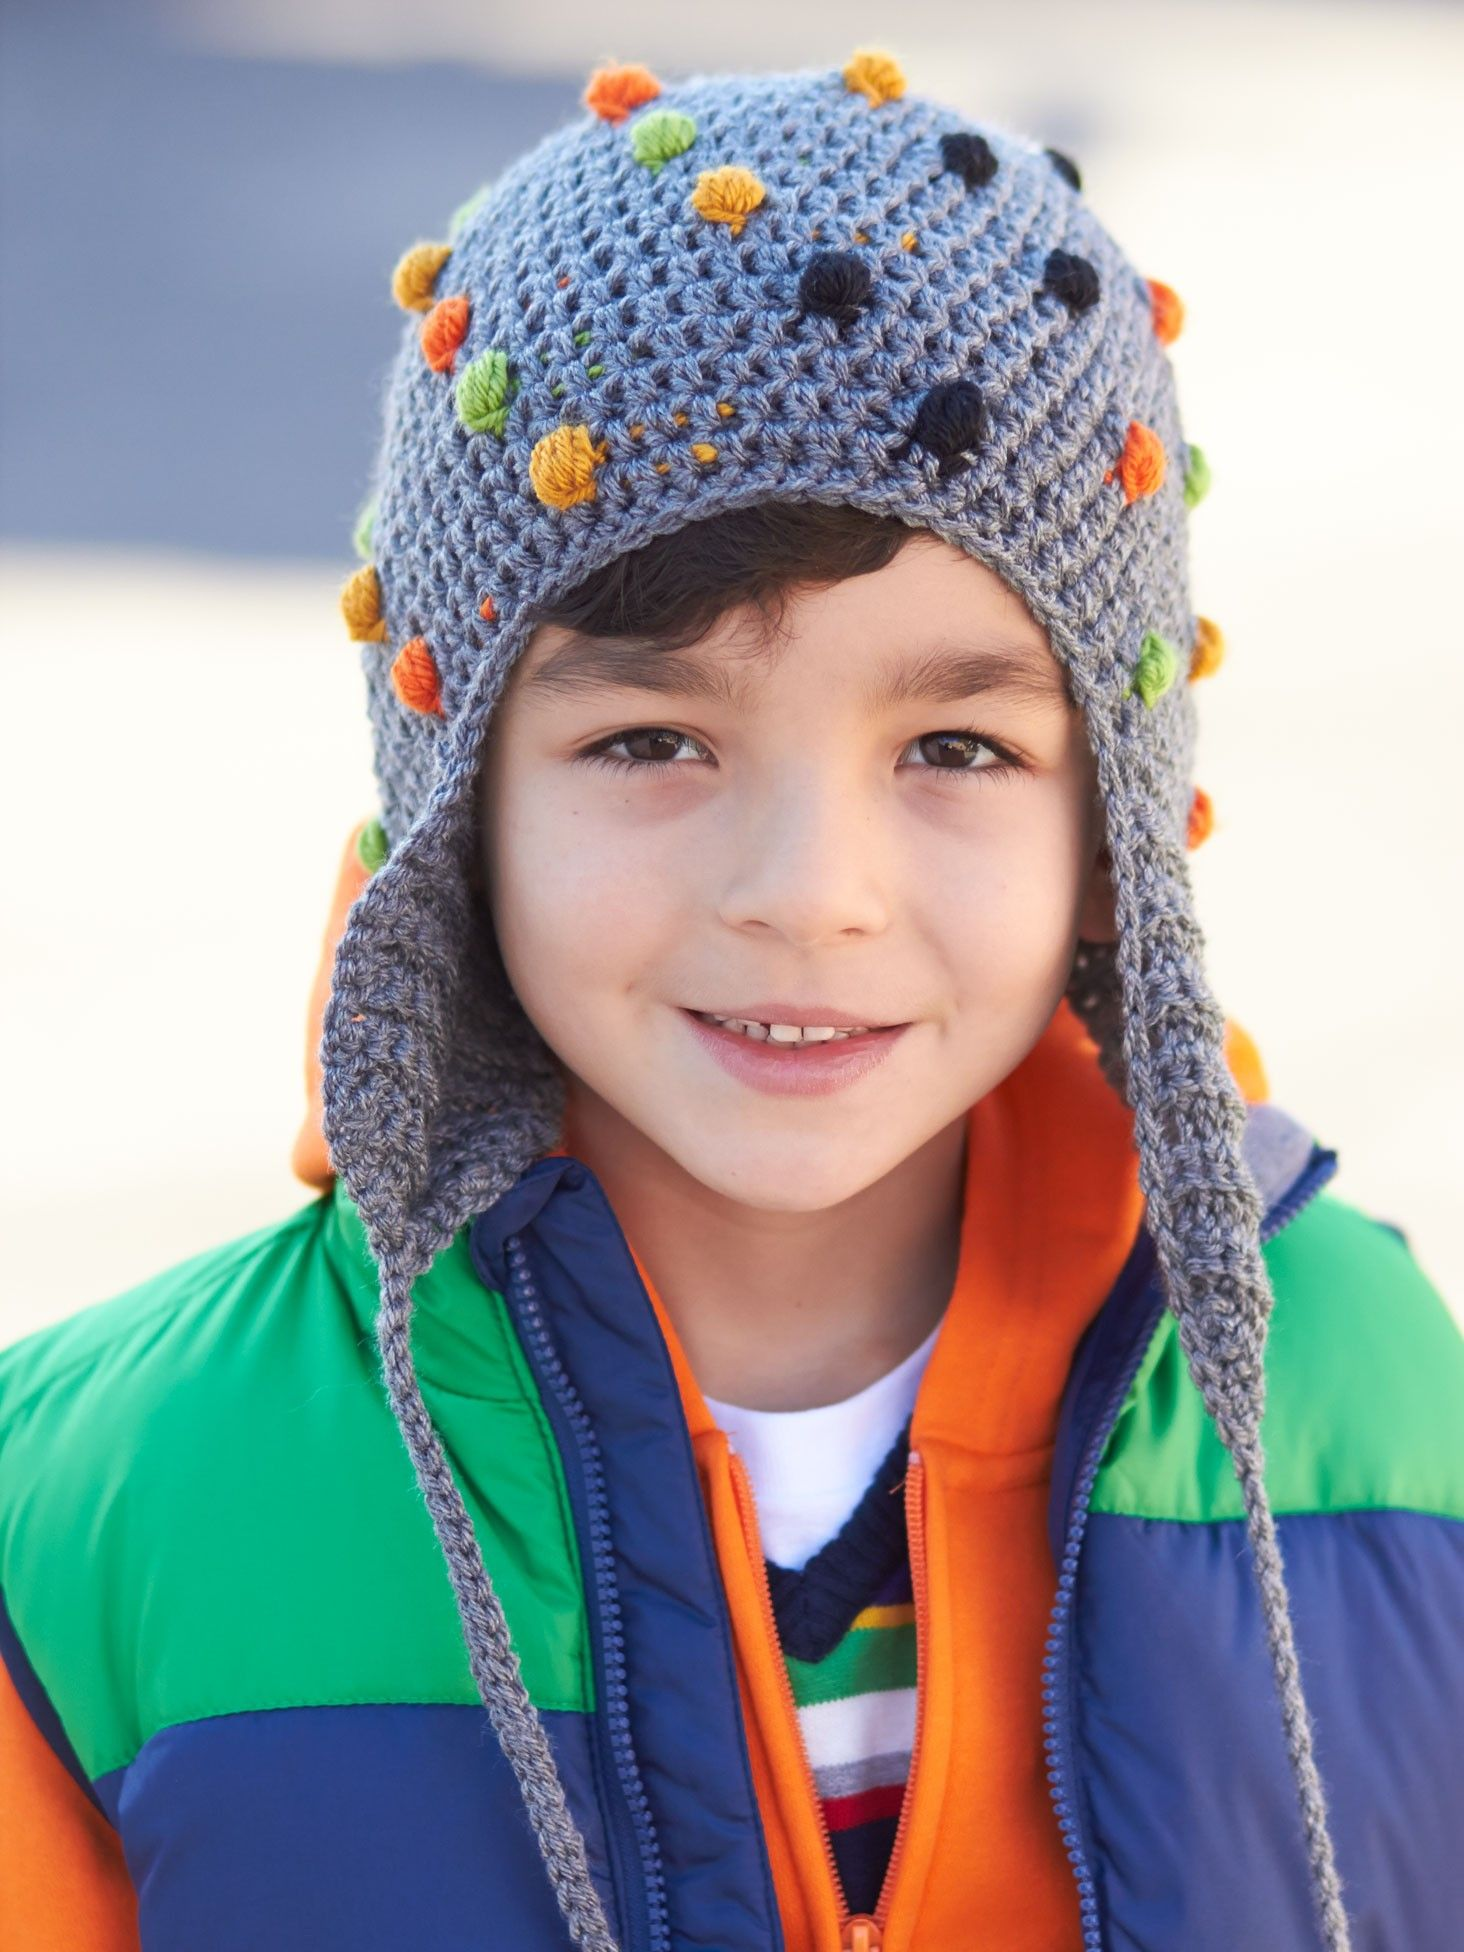 Smarty pants hat patterns yarnspirations crochet hats